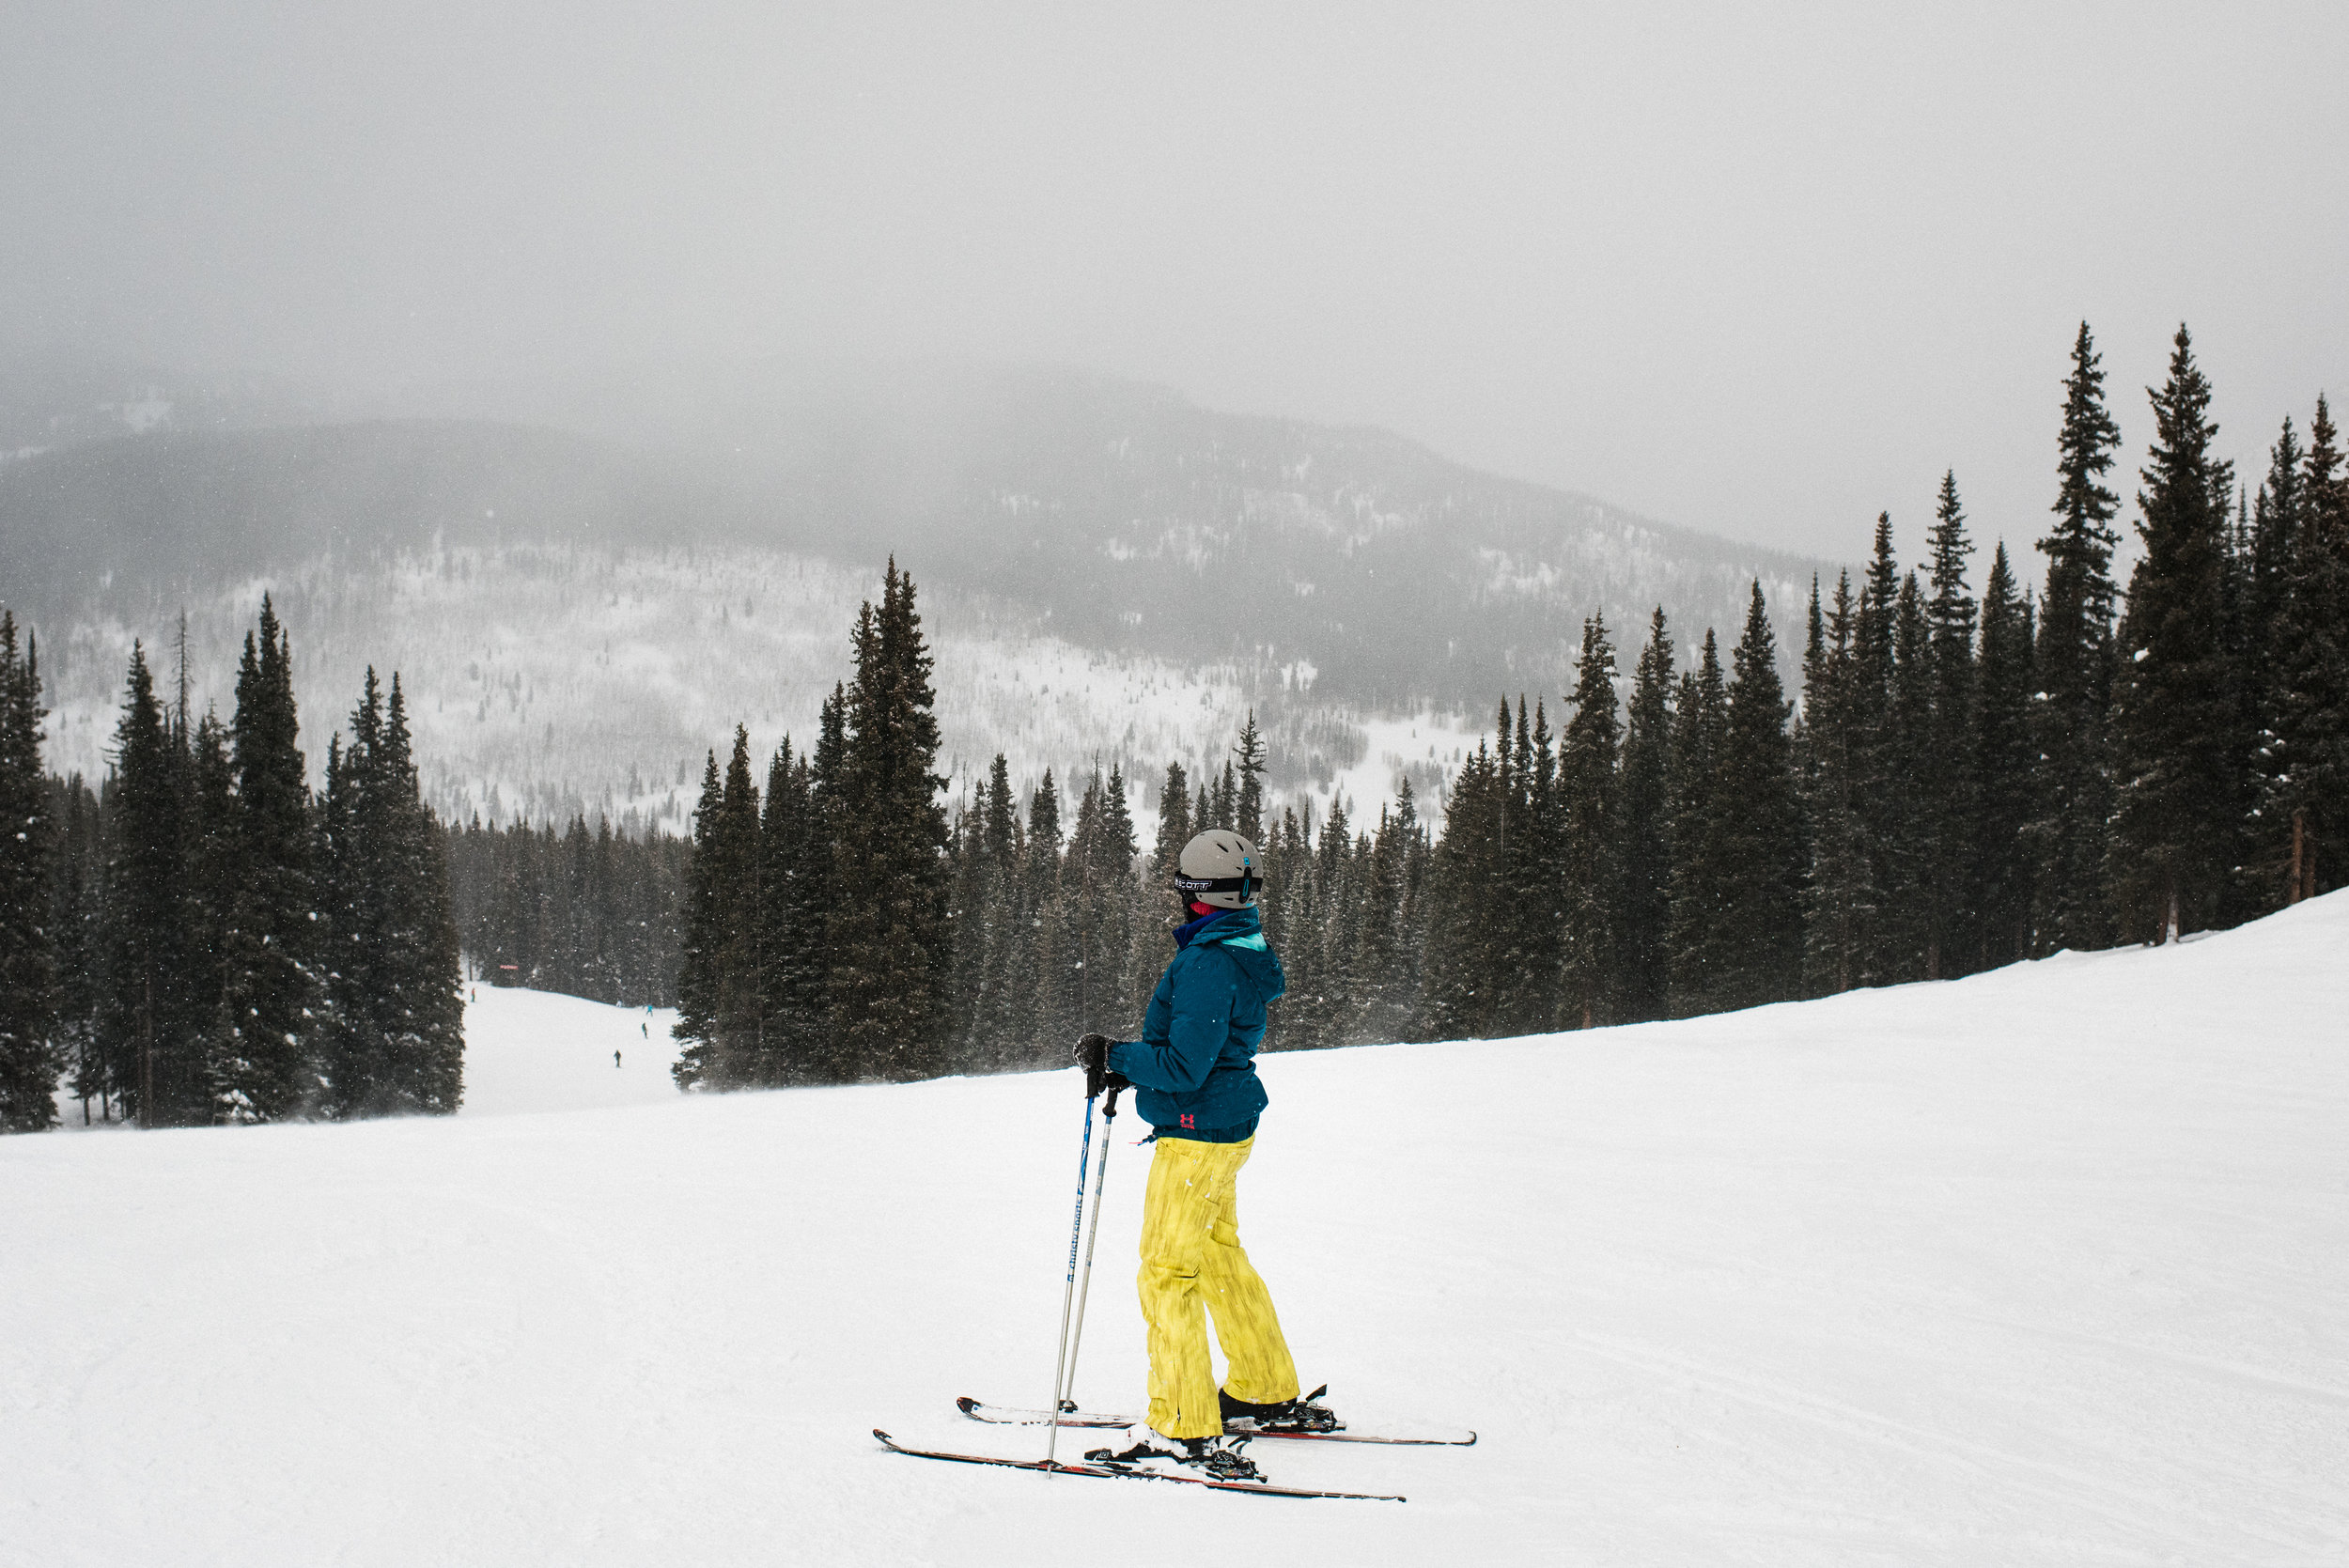 TaraShupe_Outdoor_Photographer_Loweprobags_Colorado_Copper_Mountains_Ski_09.jpg